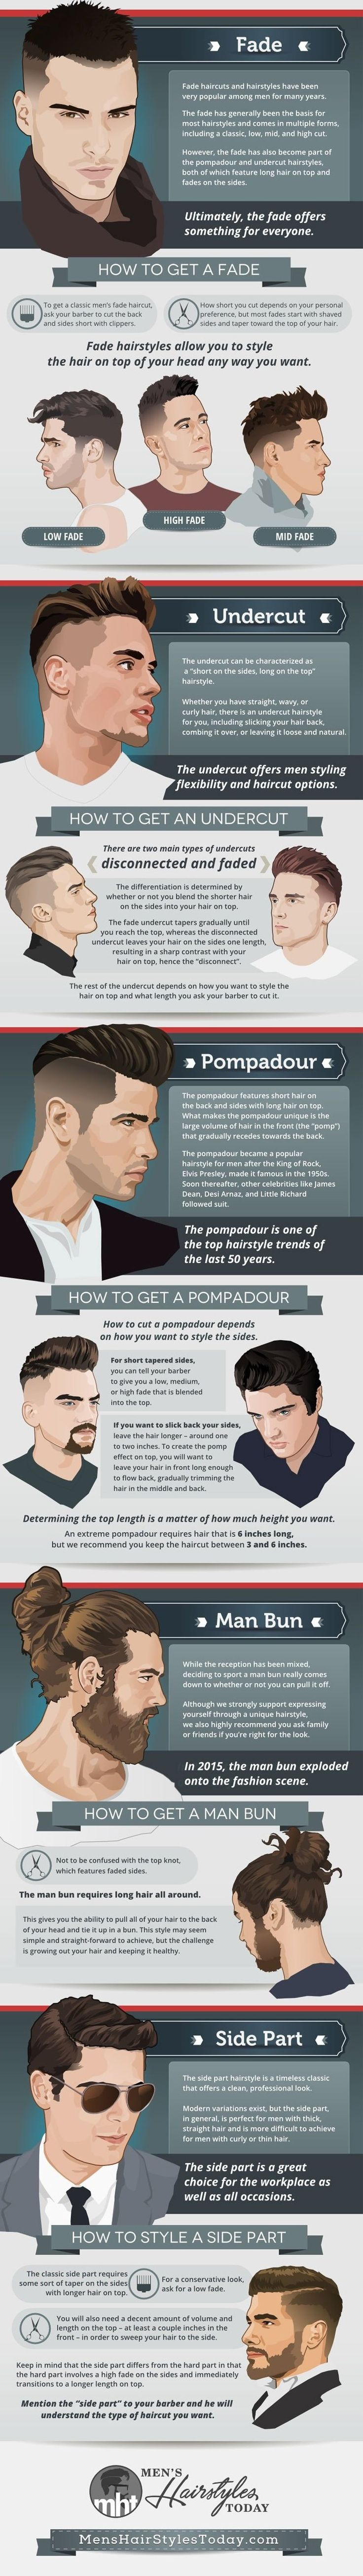 5 Greatest Men's Hairstyles Of All Time (Infographic) – LIFESTYLE BY PS